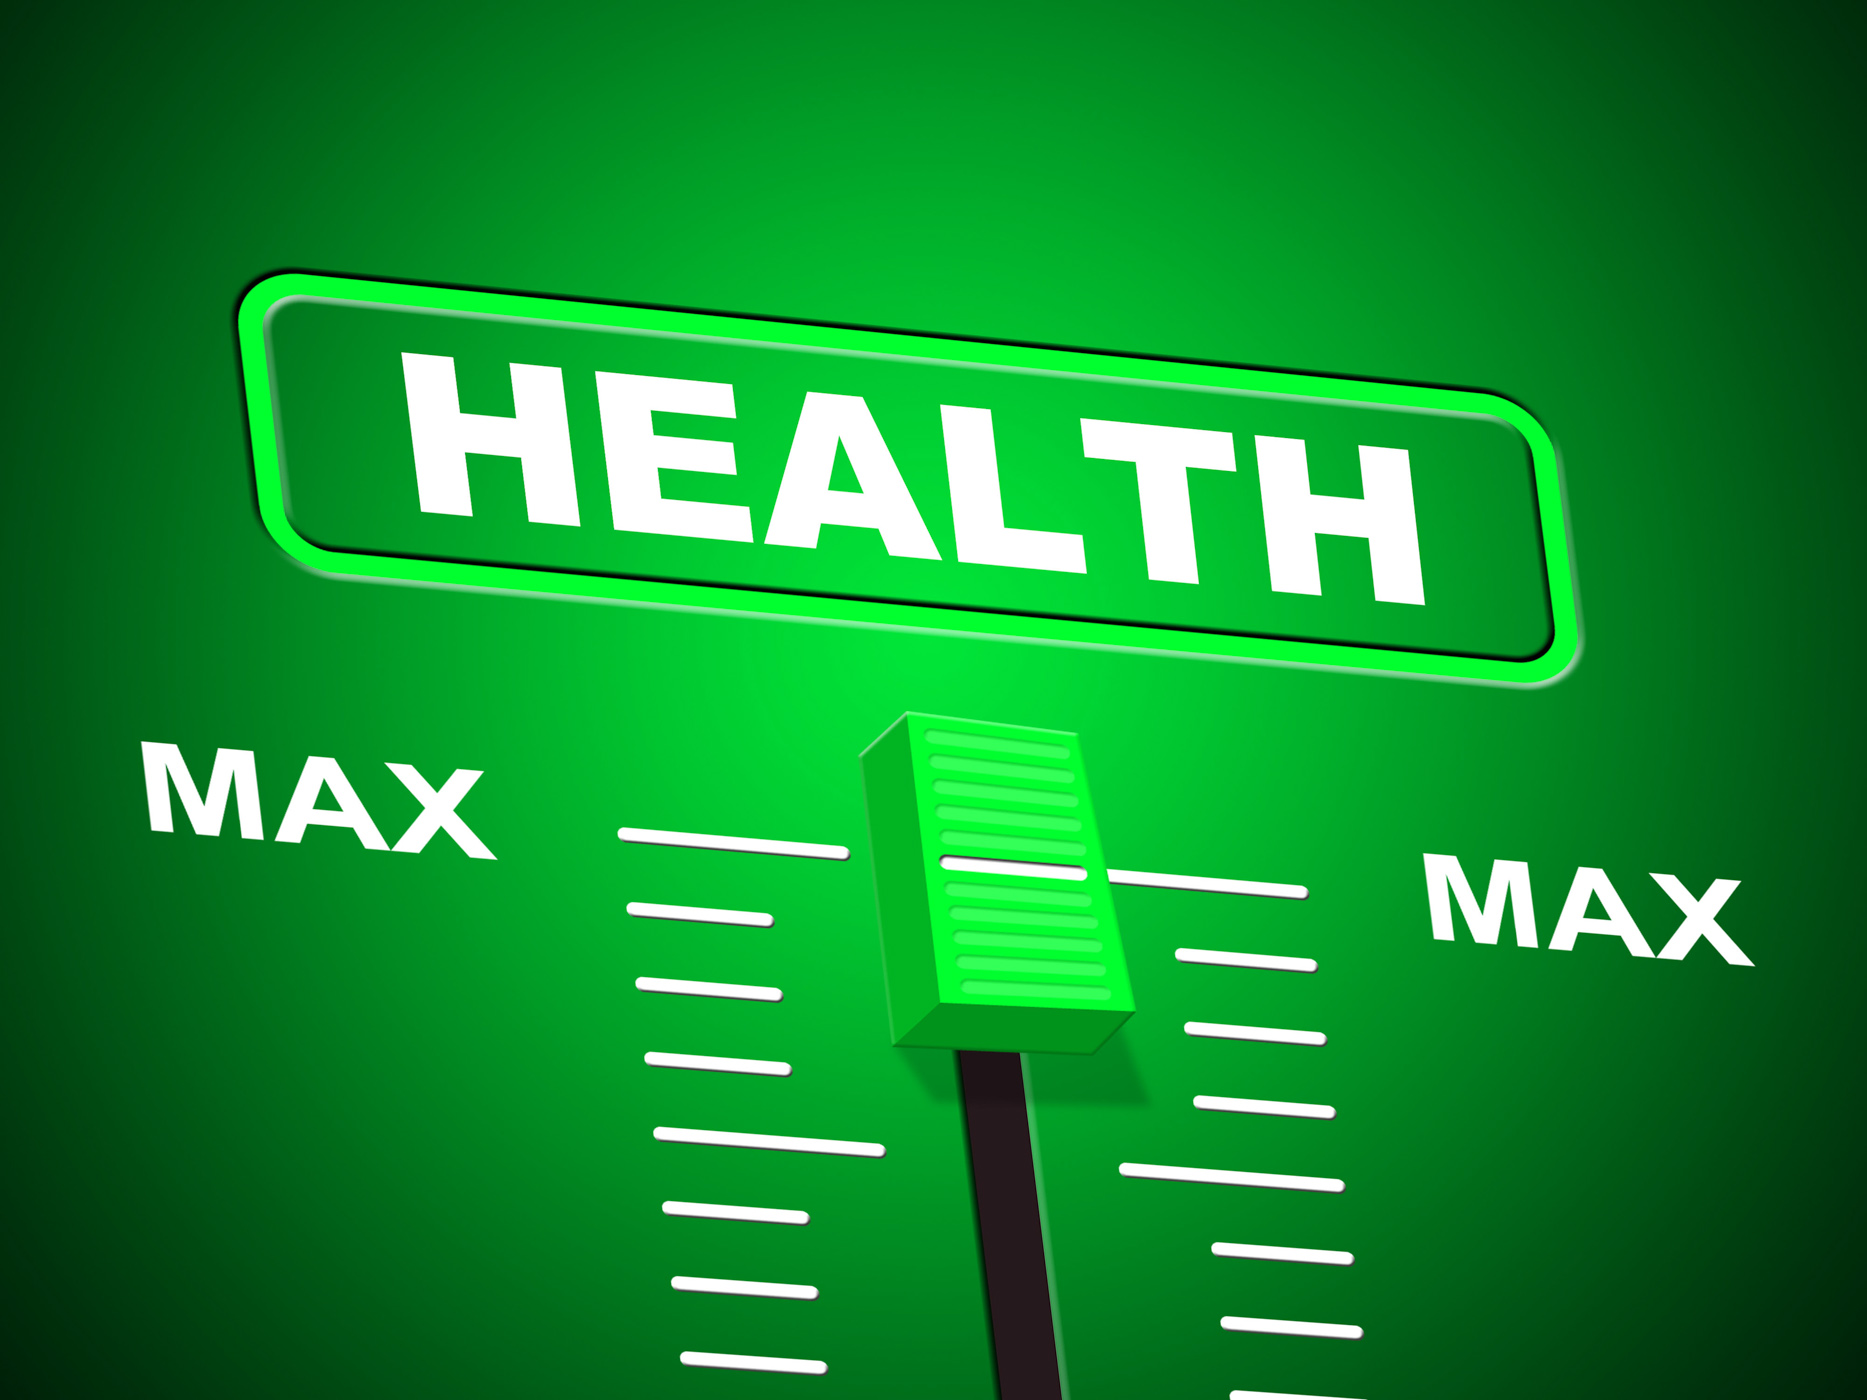 Max Health Indicates Preventive Medicine And Doctors, Care, Maximum, Wellbeing, Well, HQ Photo